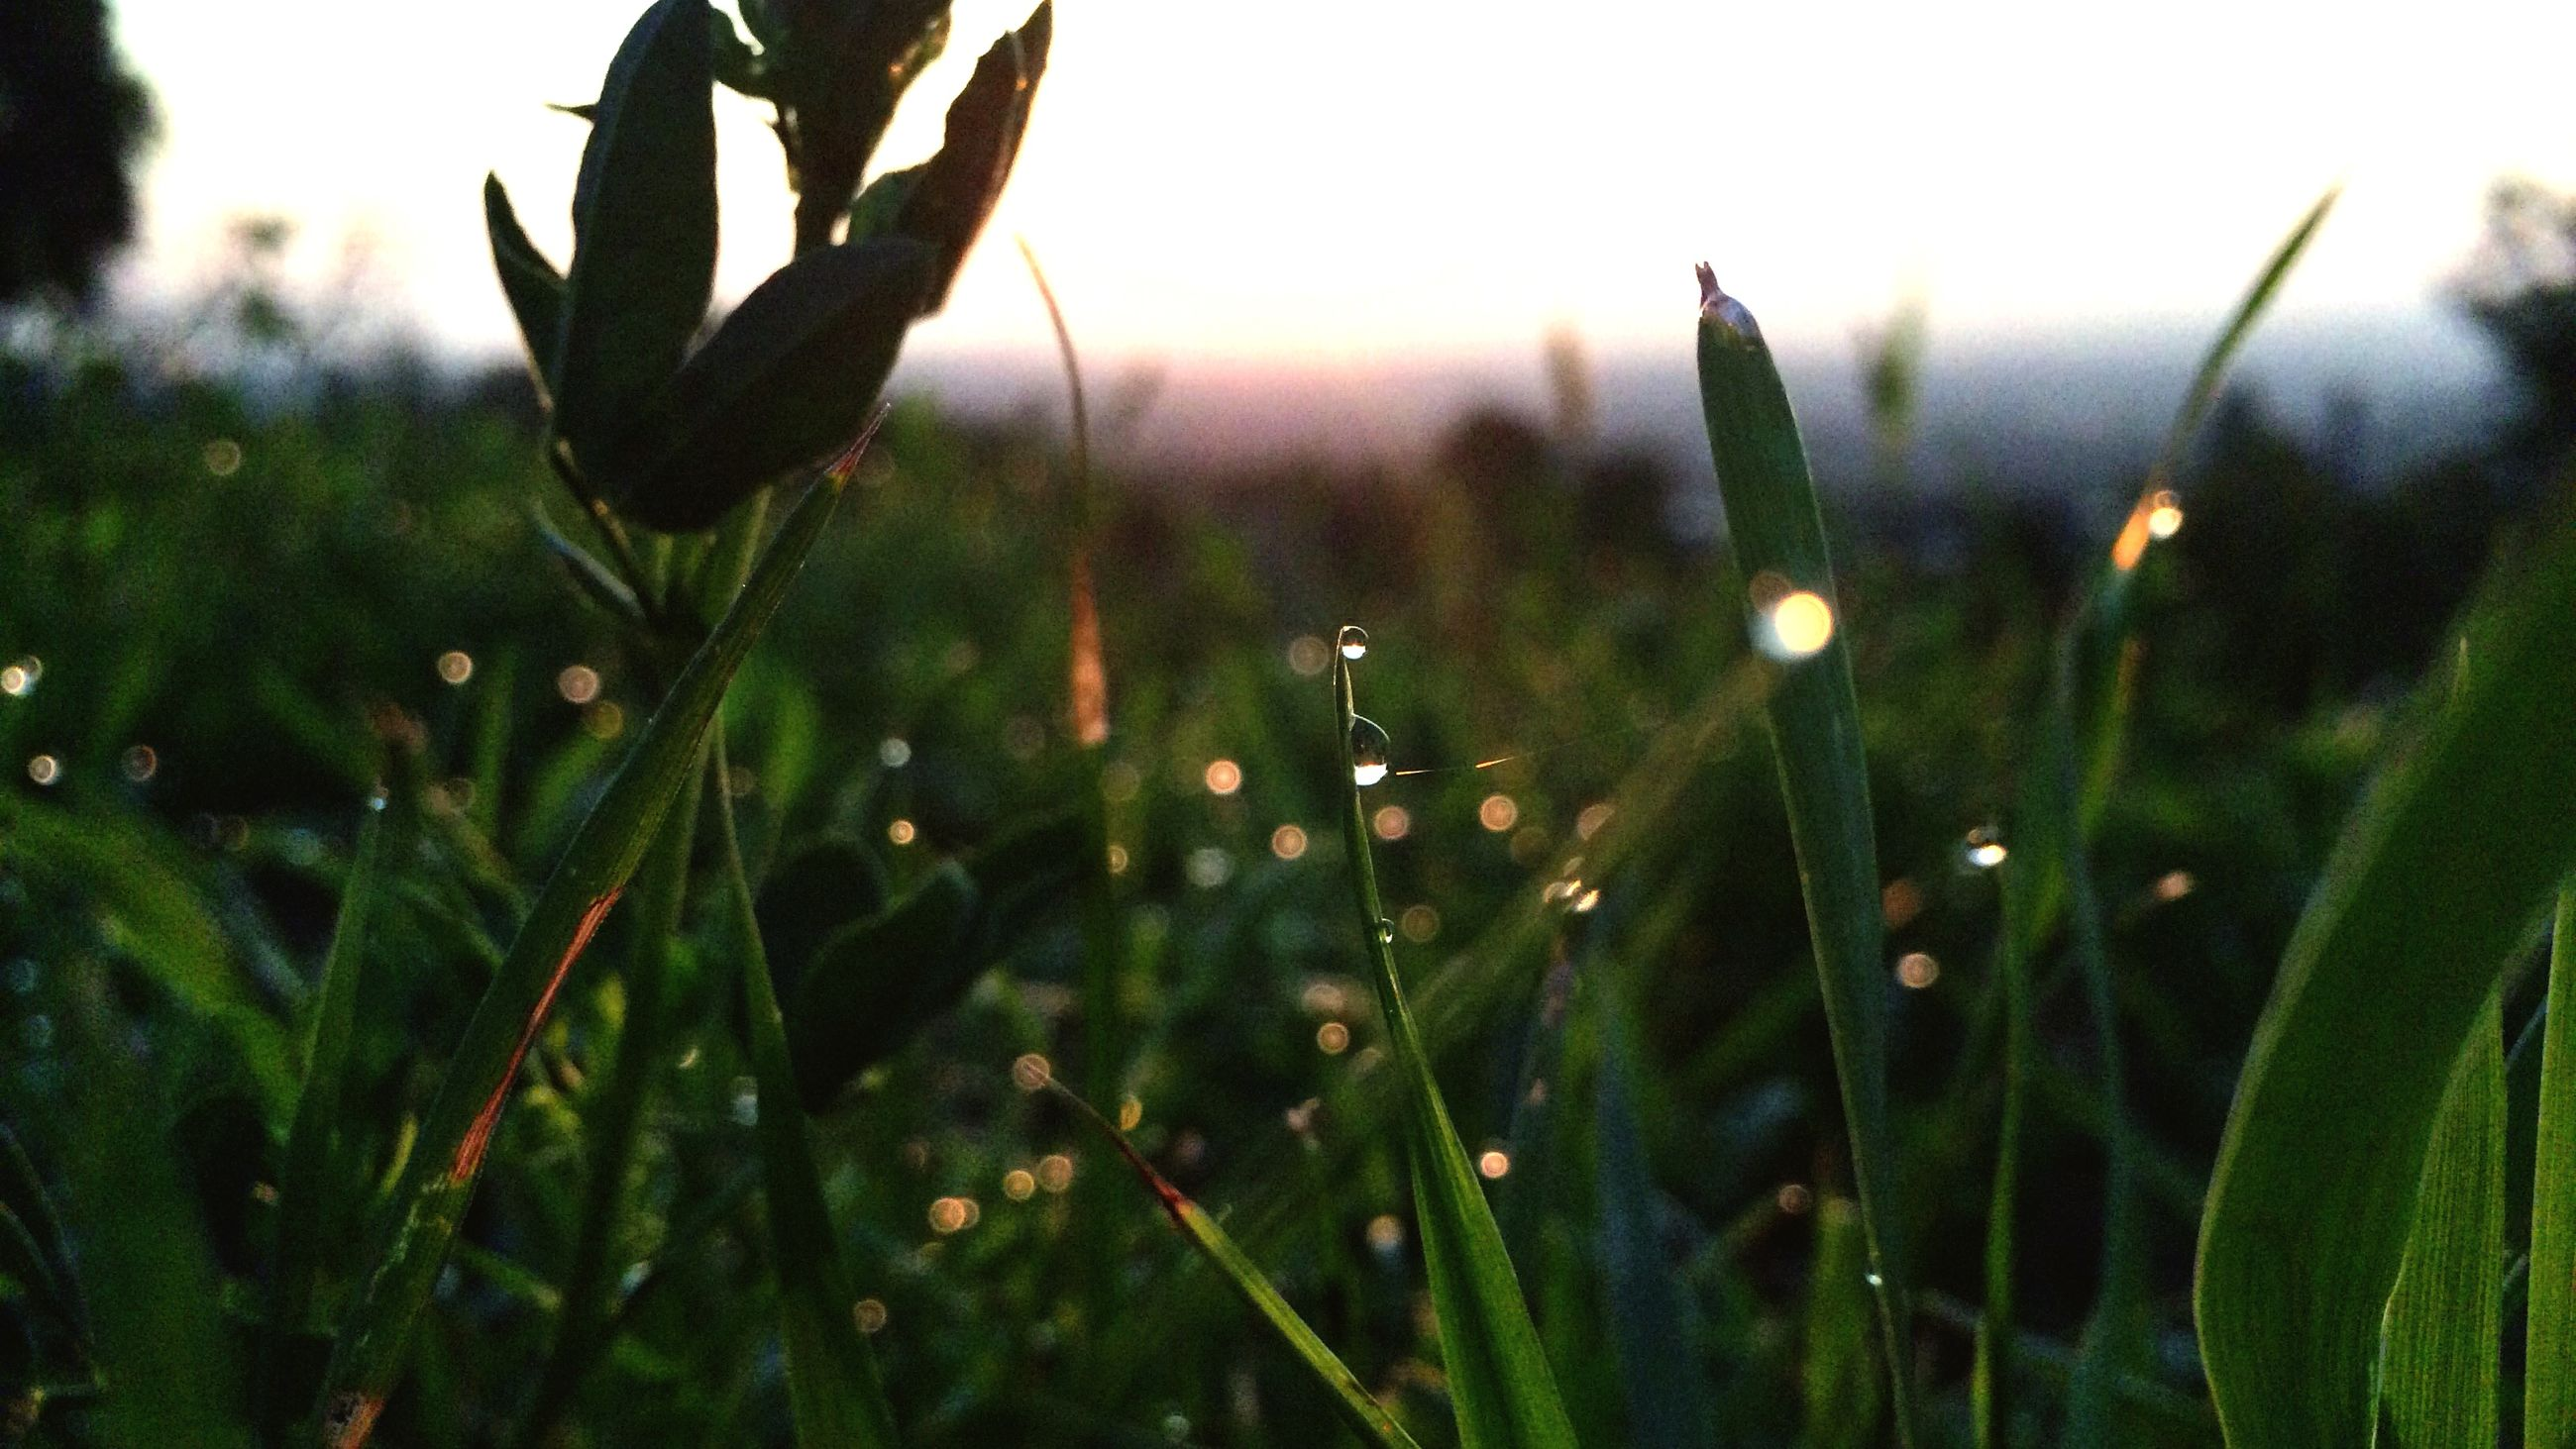 growth, nature, plant, beauty in nature, close-up, freshness, focus on foreground, field, tranquility, fragility, green color, growing, stem, clear sky, selective focus, grass, day, outdoors, tranquil scene, flower